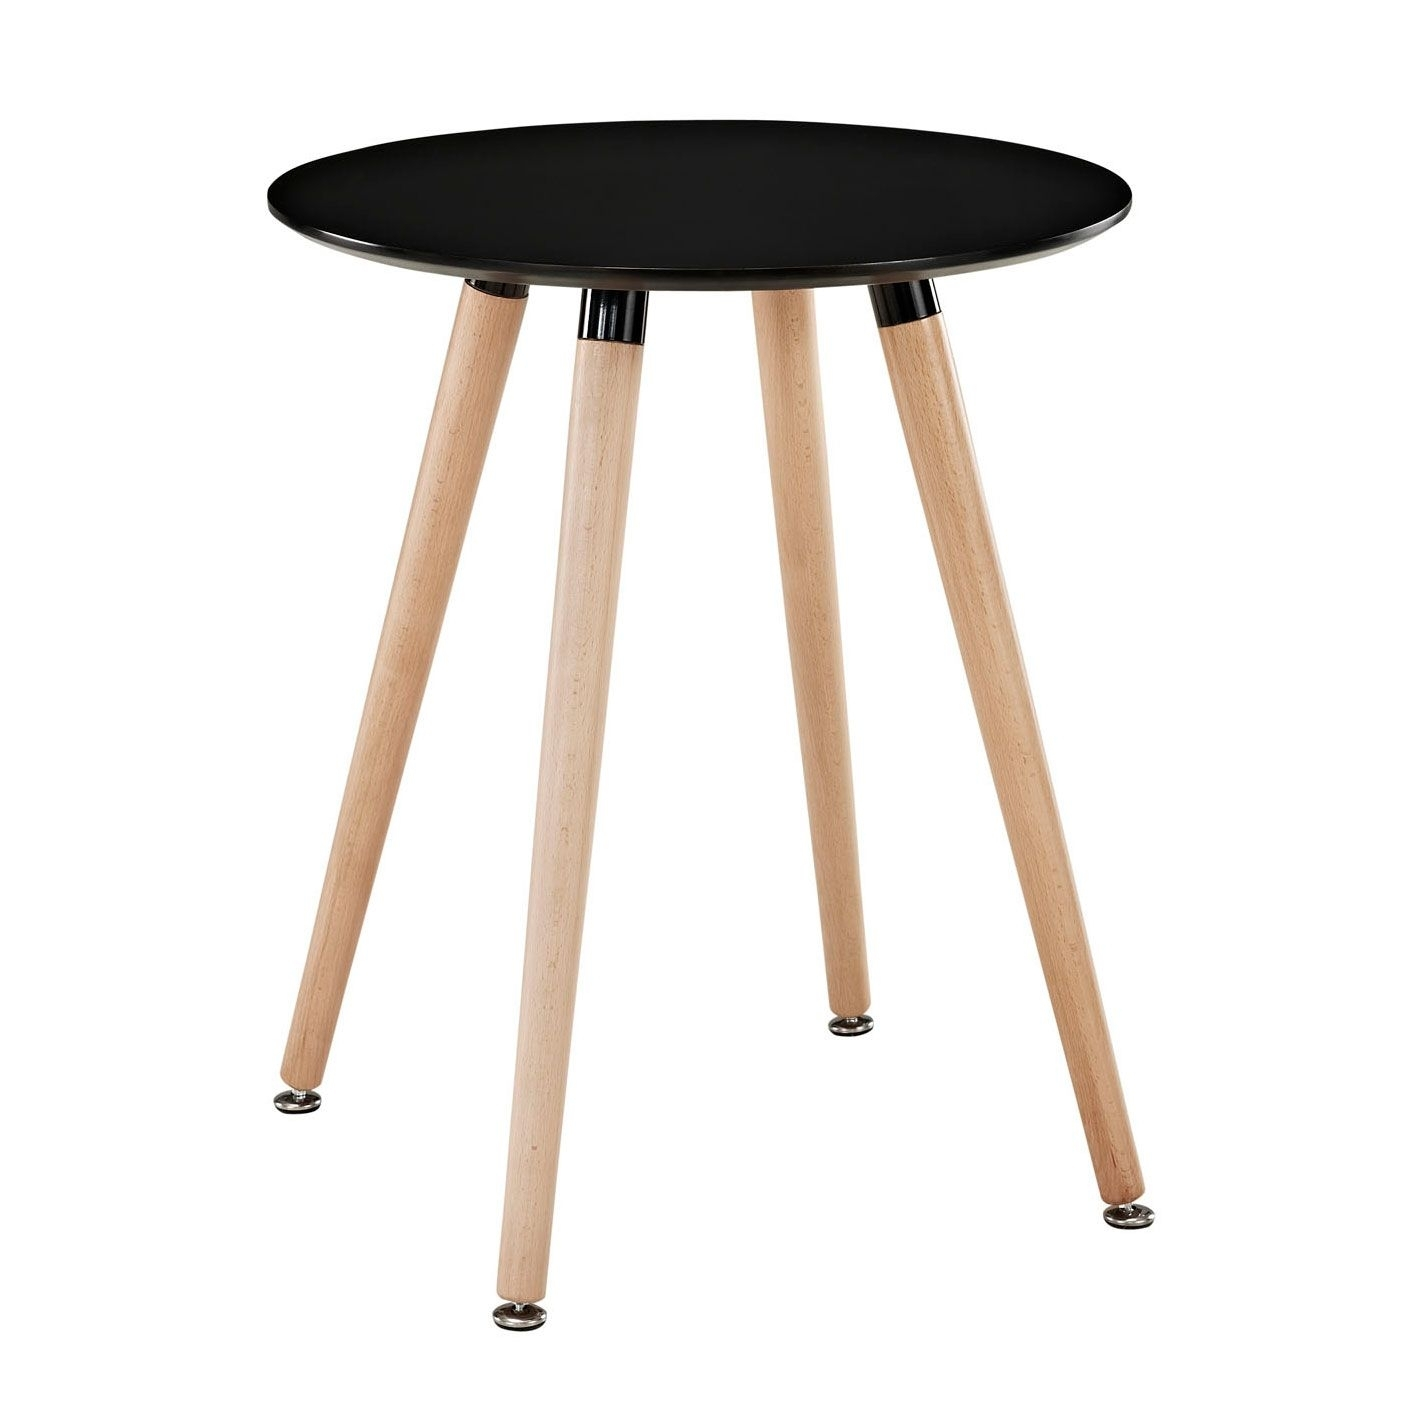 Charmed Life Side Table | Dotandbo 23 X 29 H Probably Too High within Casbah Coffee-Side Tables (Image 16 of 30)